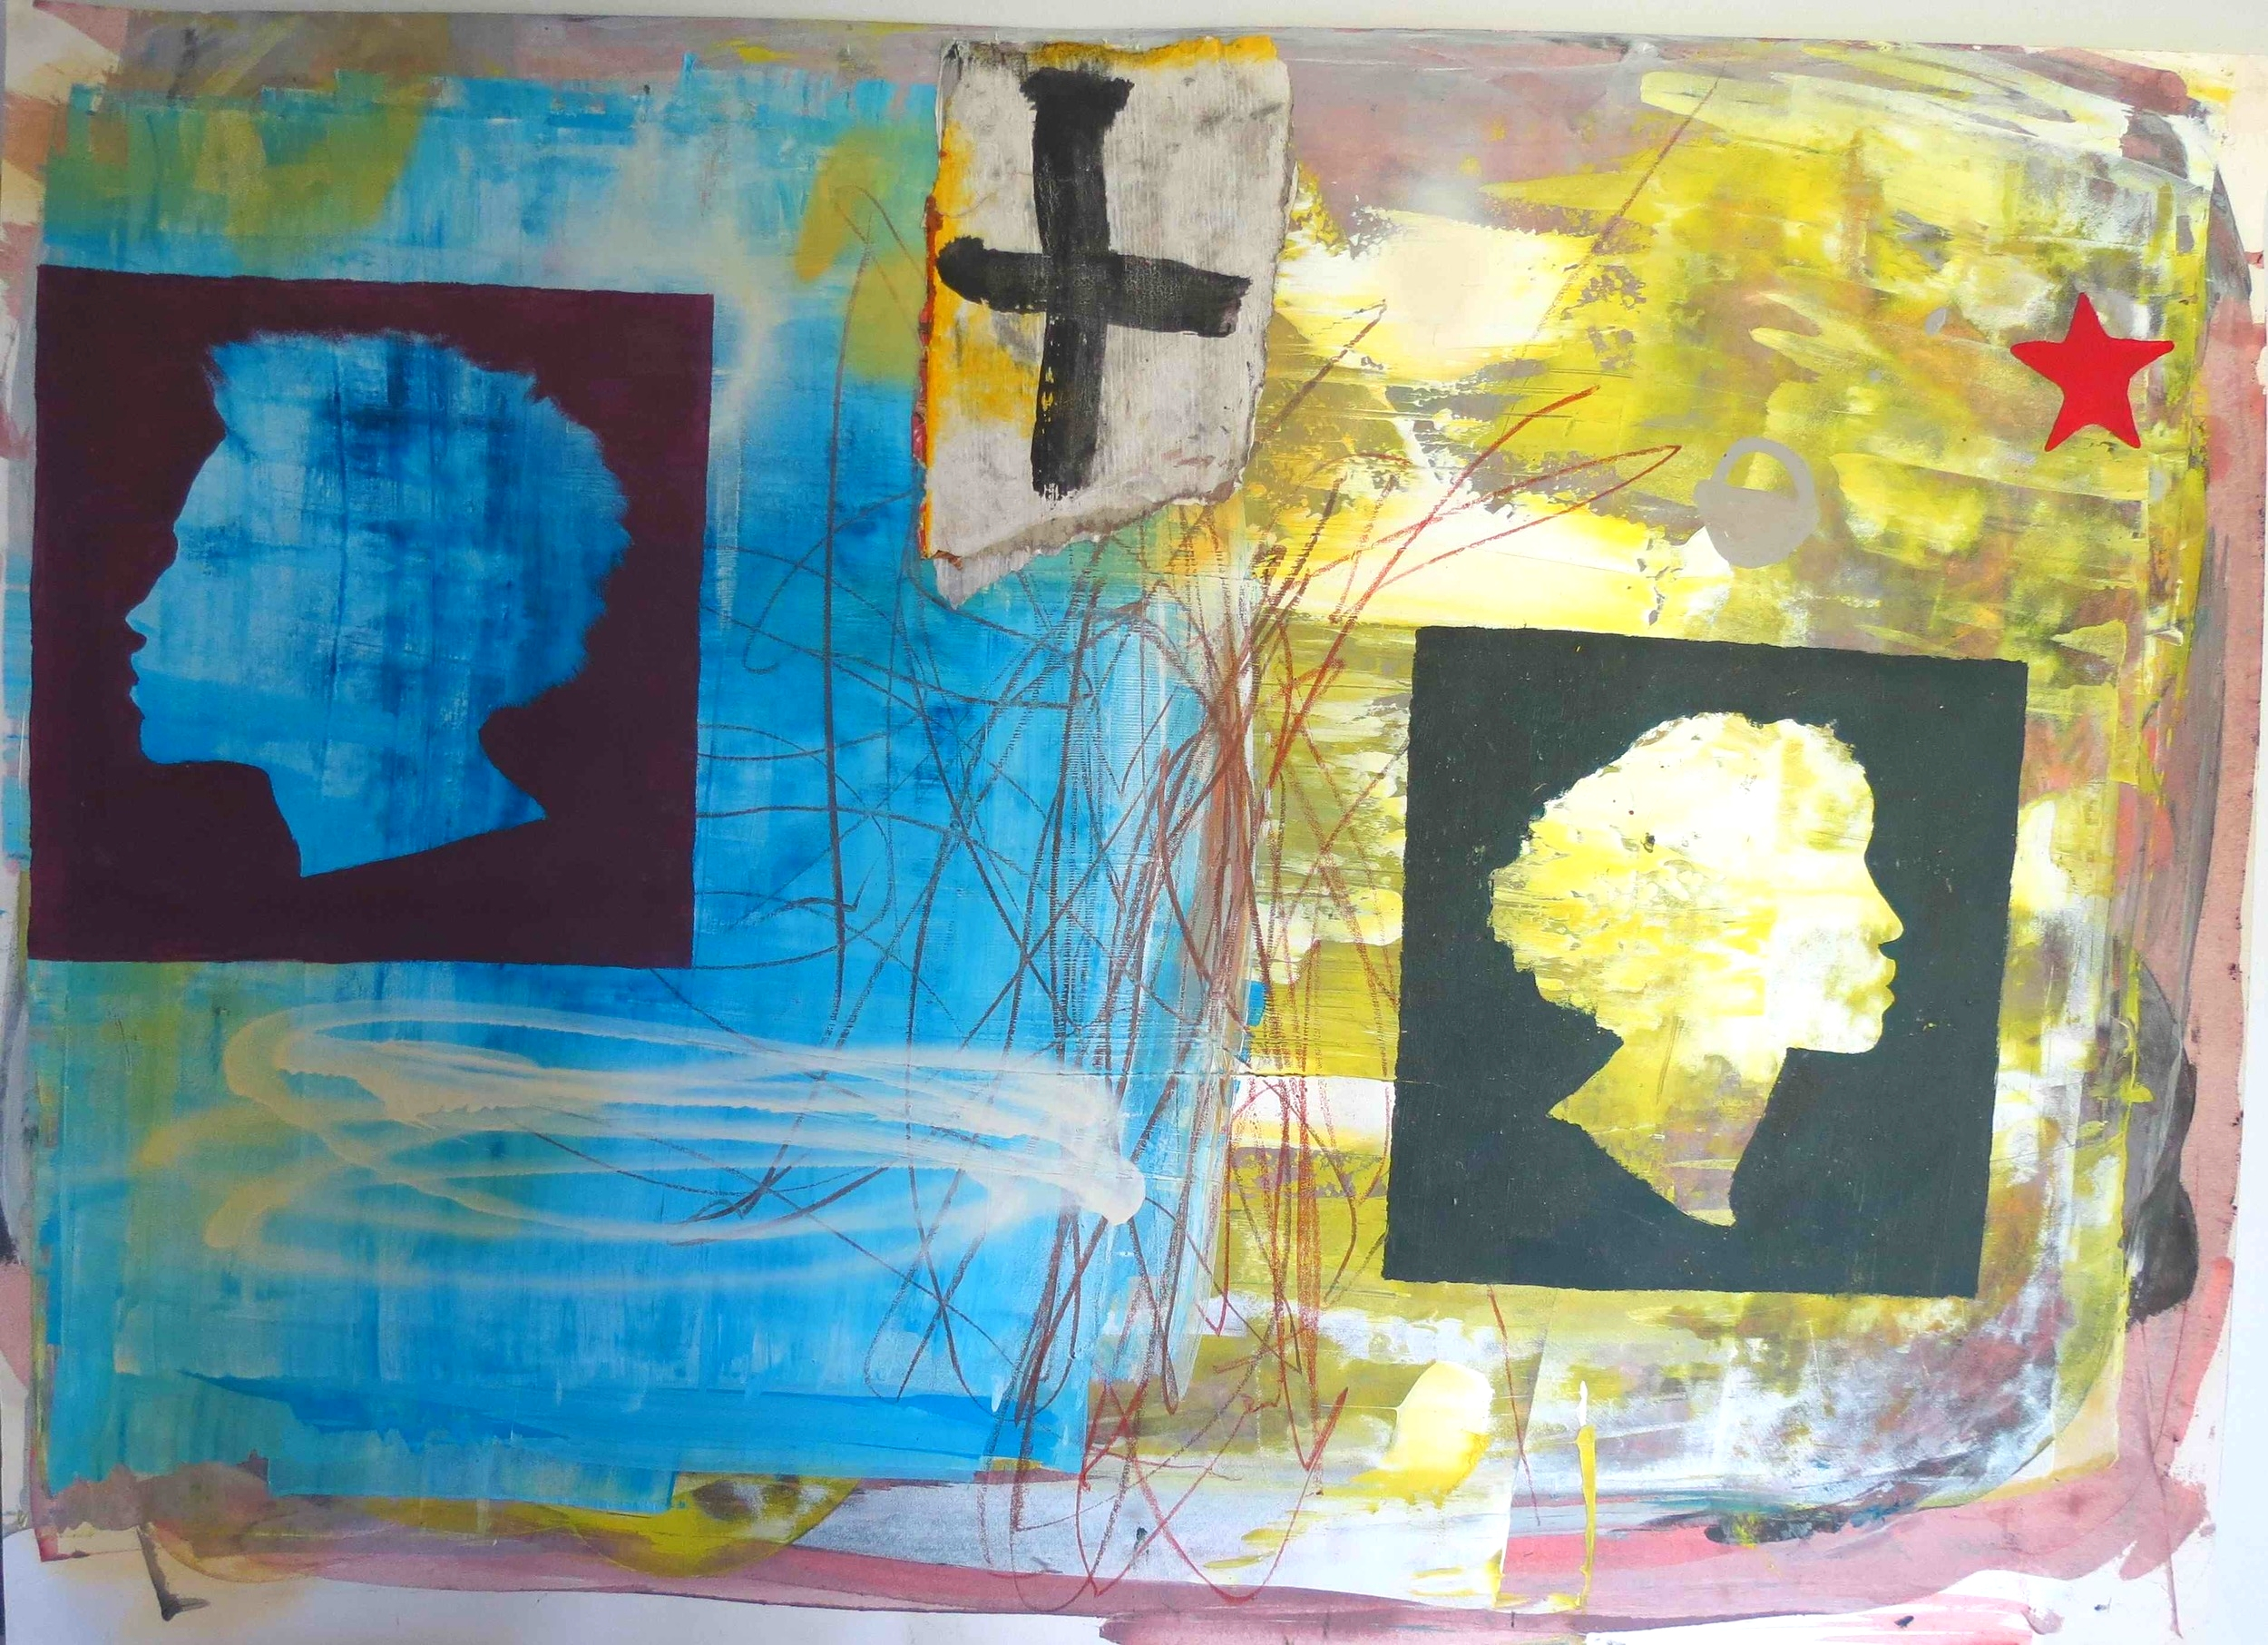 Night and Day , 2002, mixed media on paper, 56 cm x 76 cm